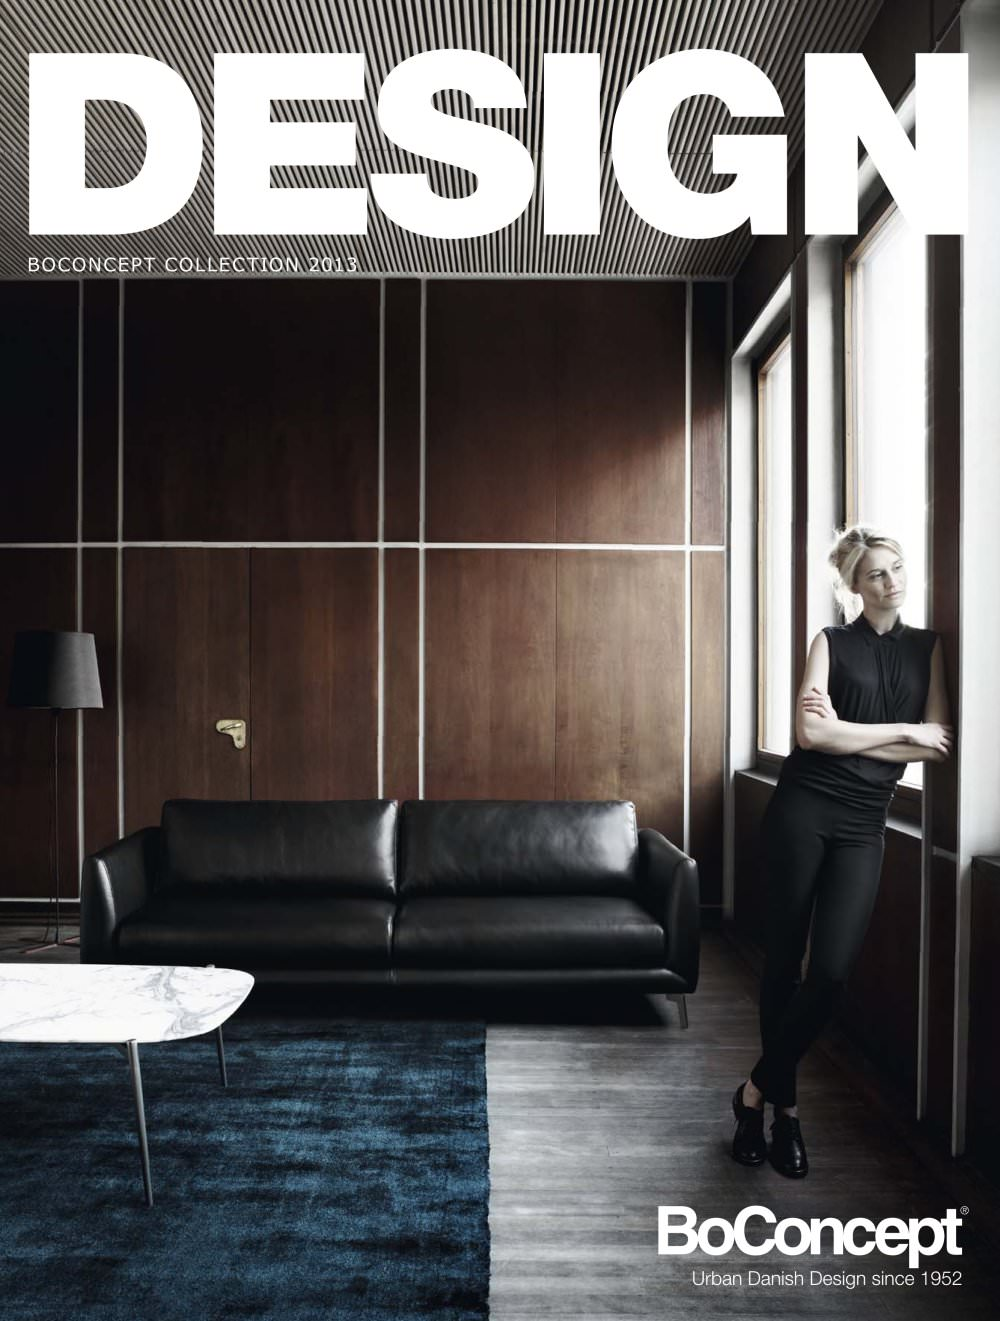 Nice Boconcept Plan De Campagne #9: Design Boconcept Collection 2013 - 1 / 164 Pages